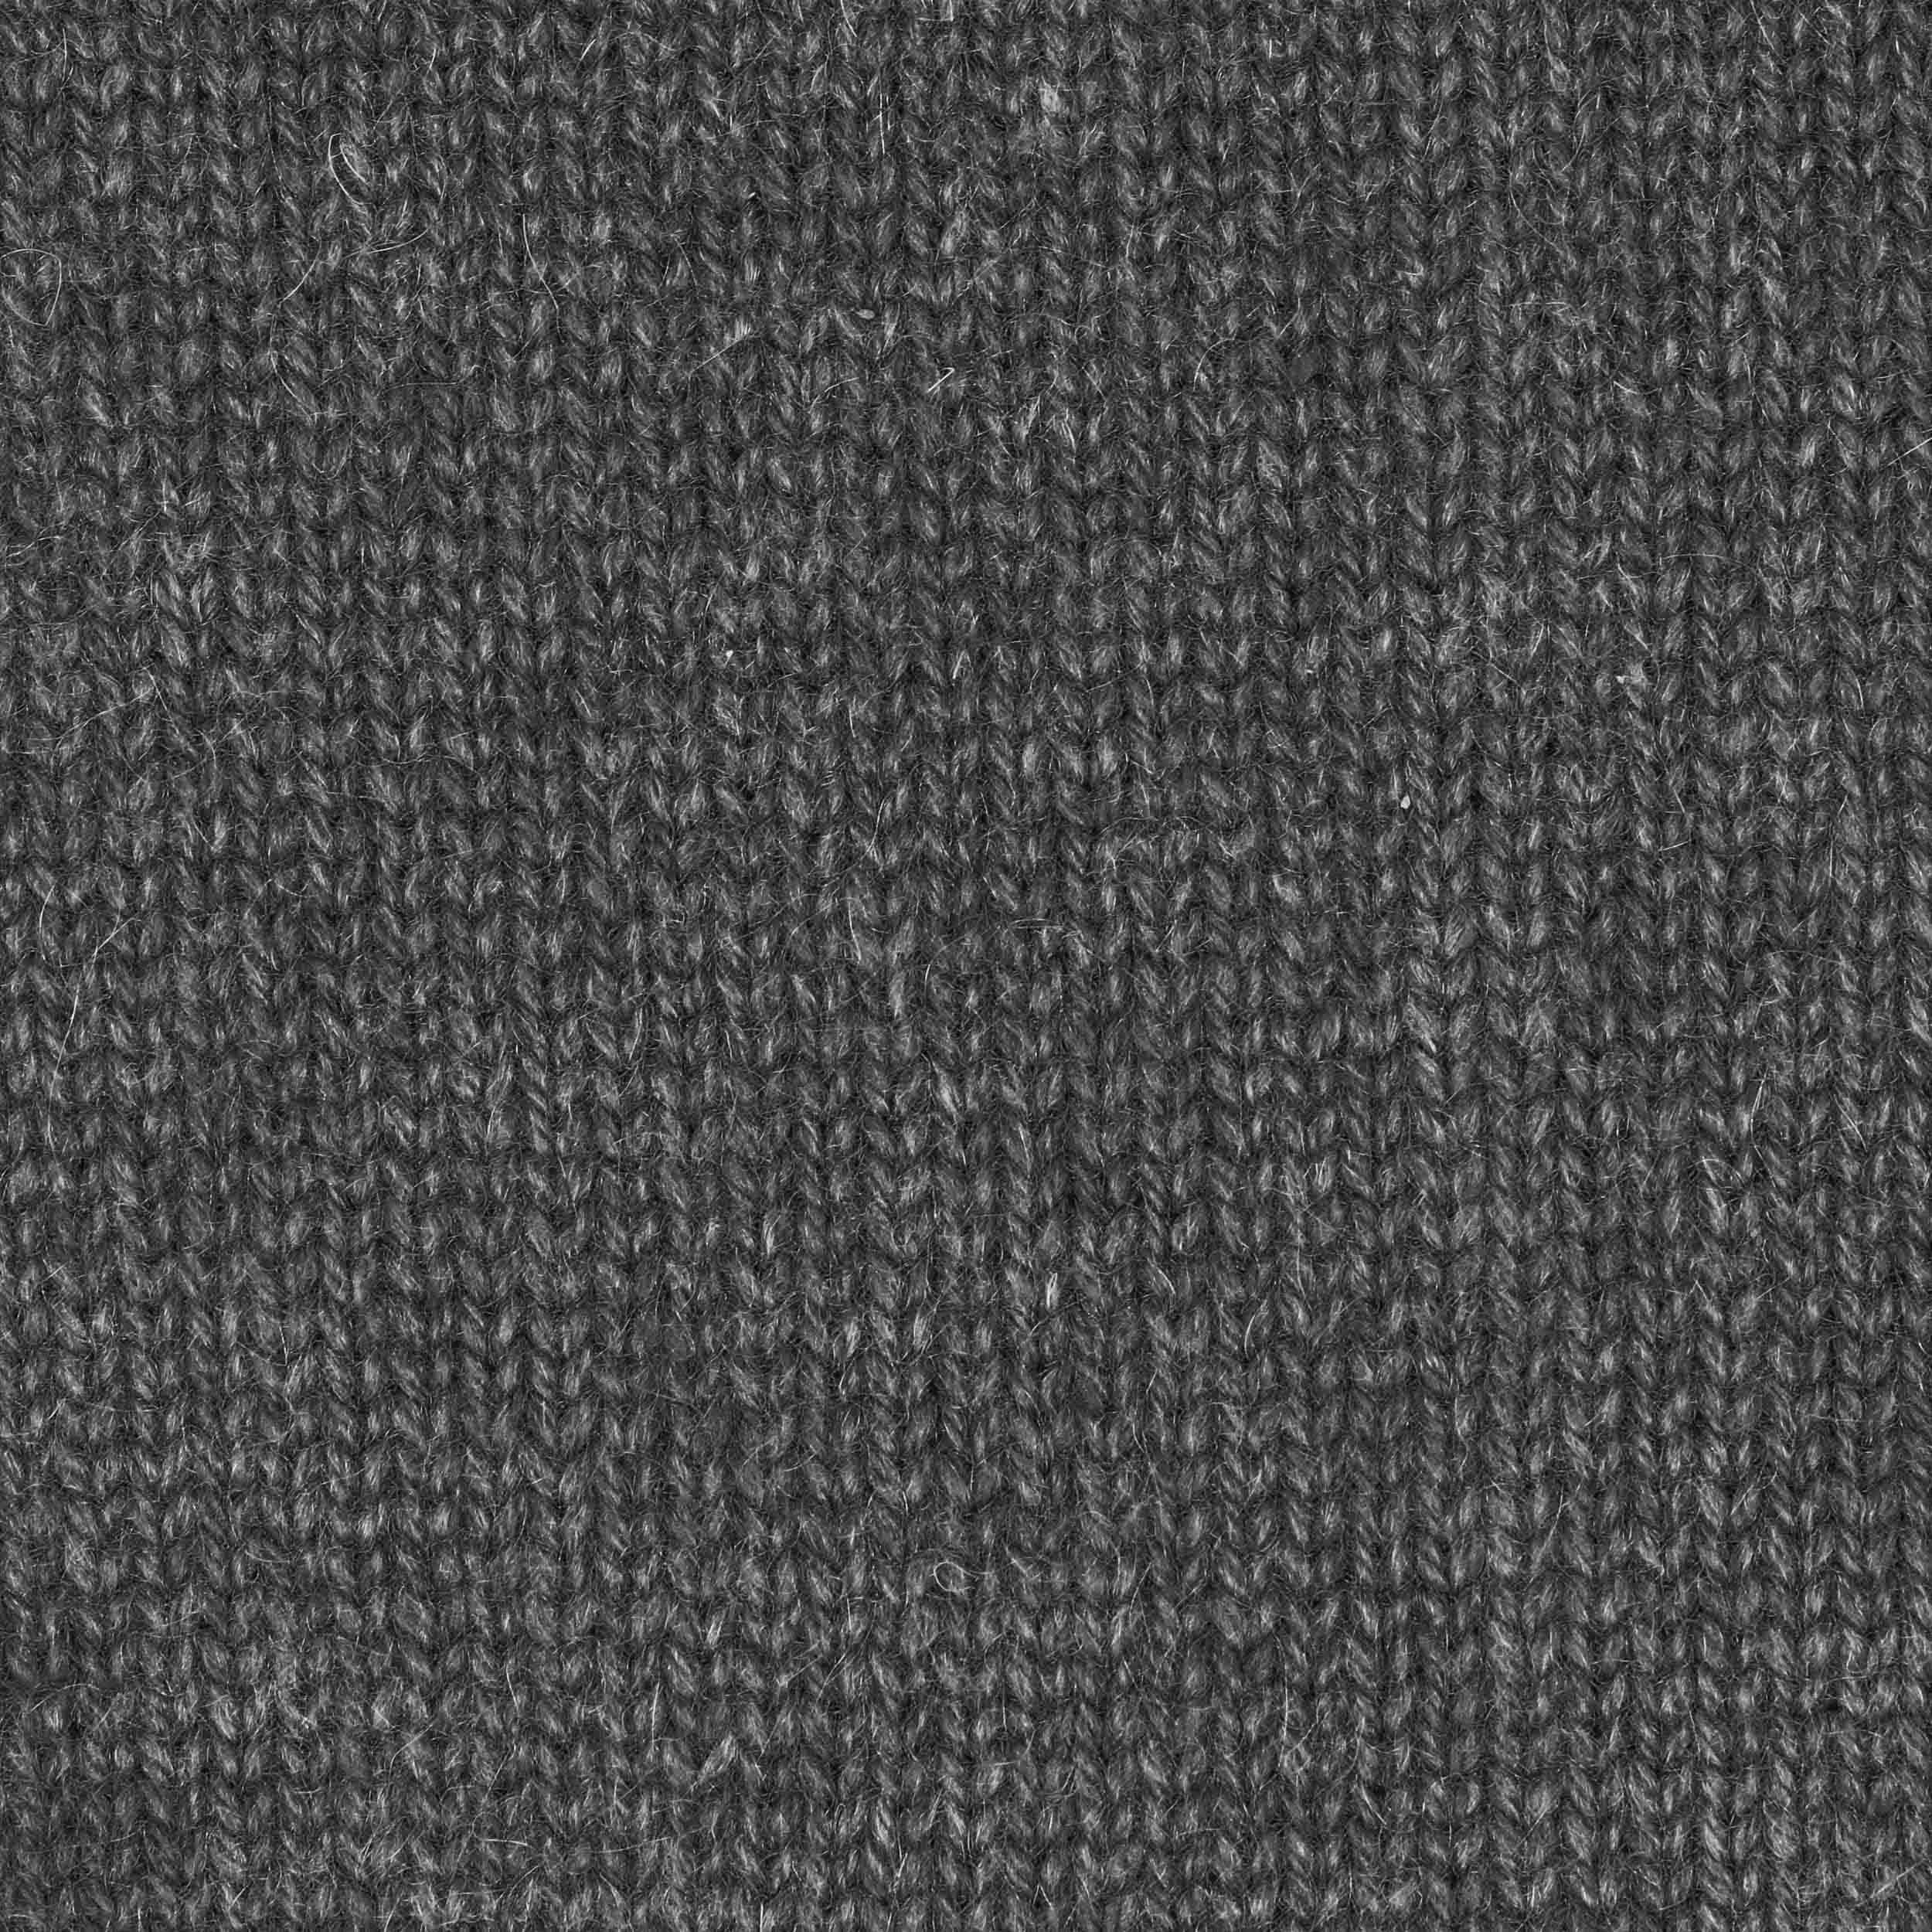 b0ab1bb2d91 ... Rolled Edge Cashmere Beanie by Seeberger - anthracite 3 ...